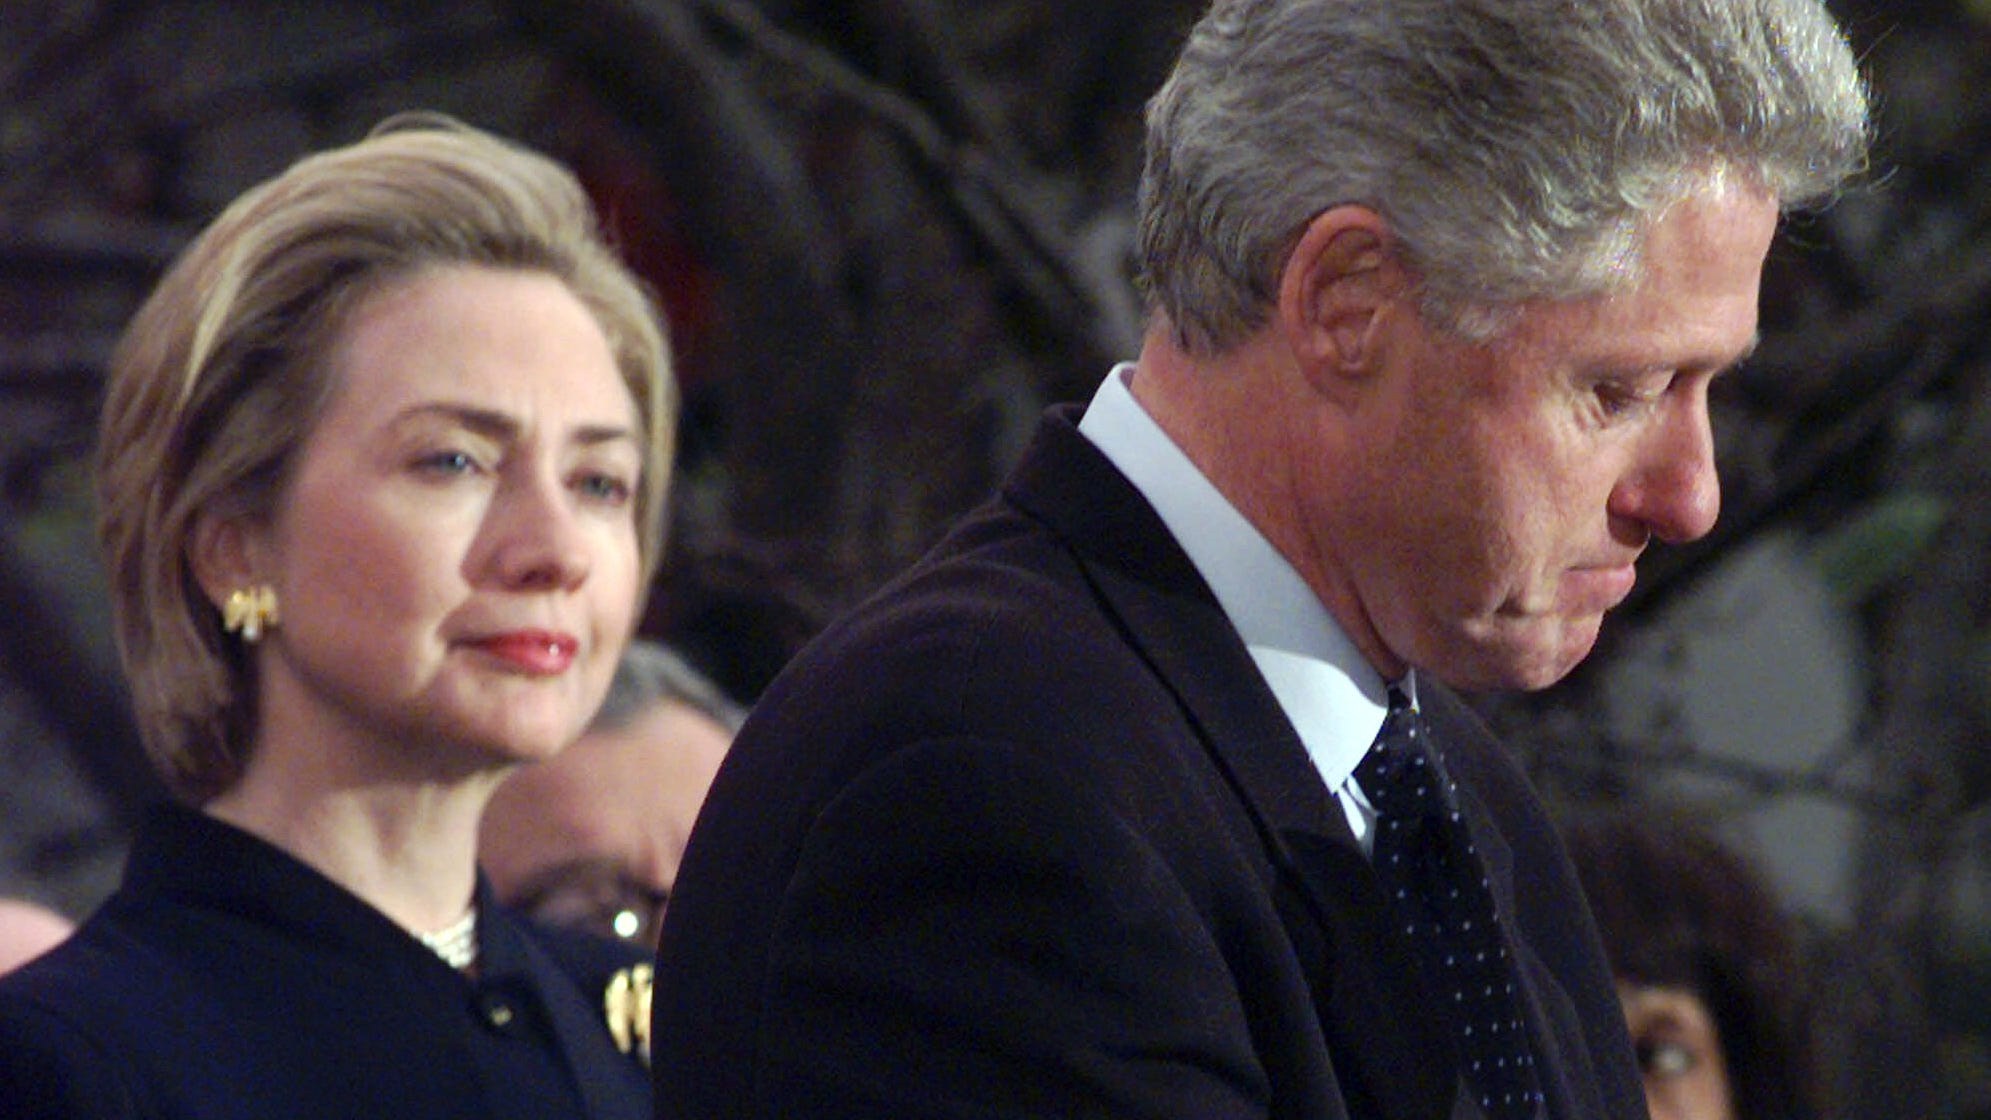 Former fist lady Hillary Rodham Clinton watches President Clinton pause as he thanks those Democratic members of the House of Representatives who voted against impeachment in this Dec. 19, 1998 file photo.